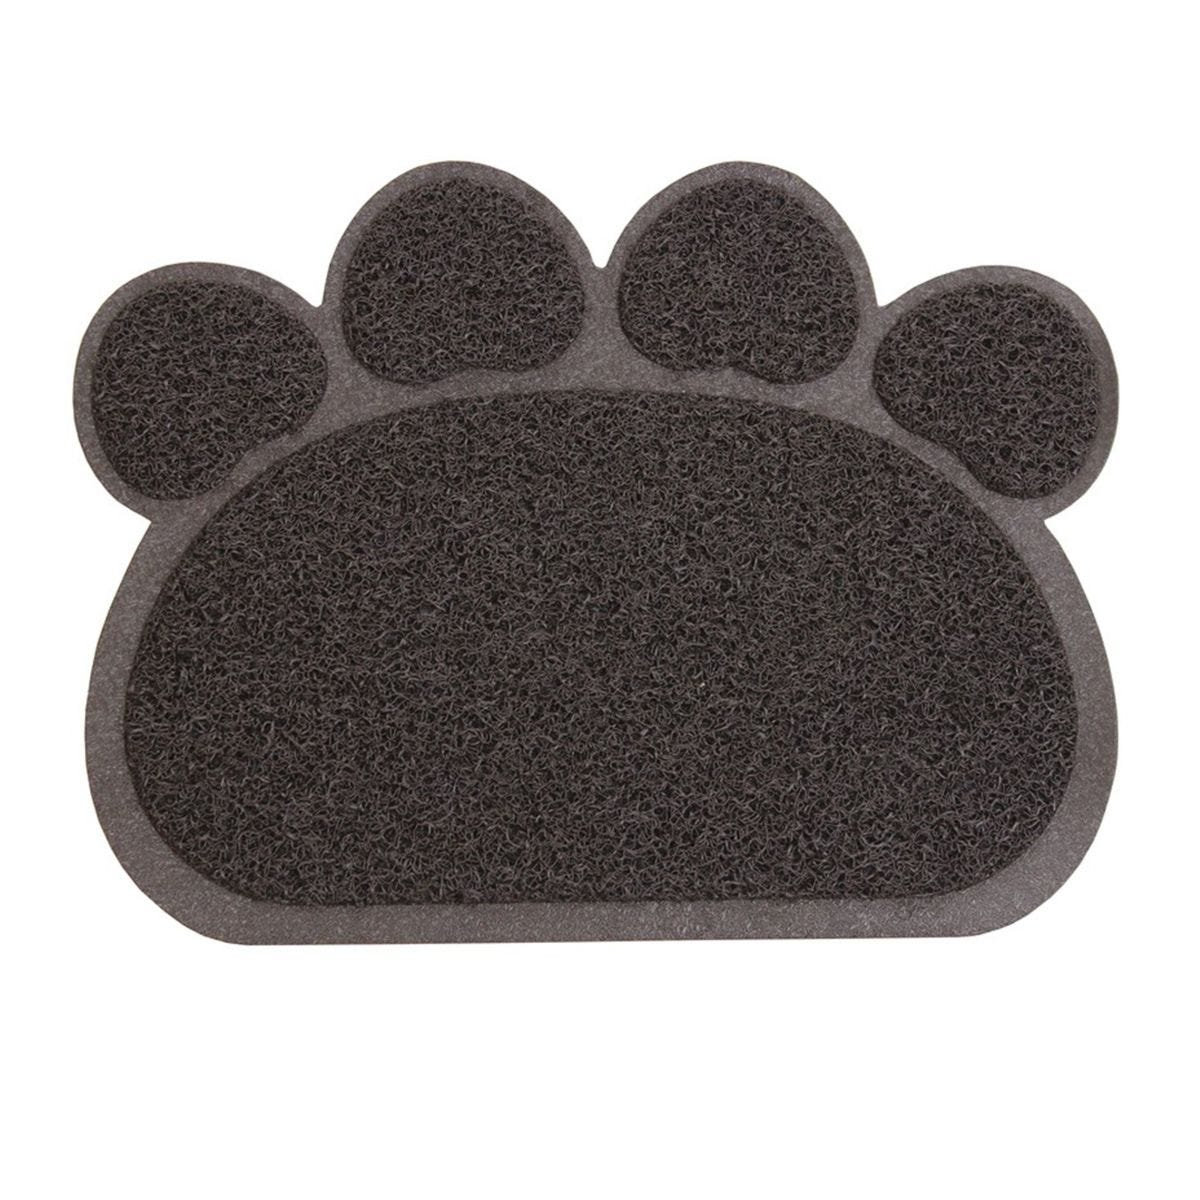 JVL 45x60cm Paw Shaped Mud Grabber Doormat - Brown